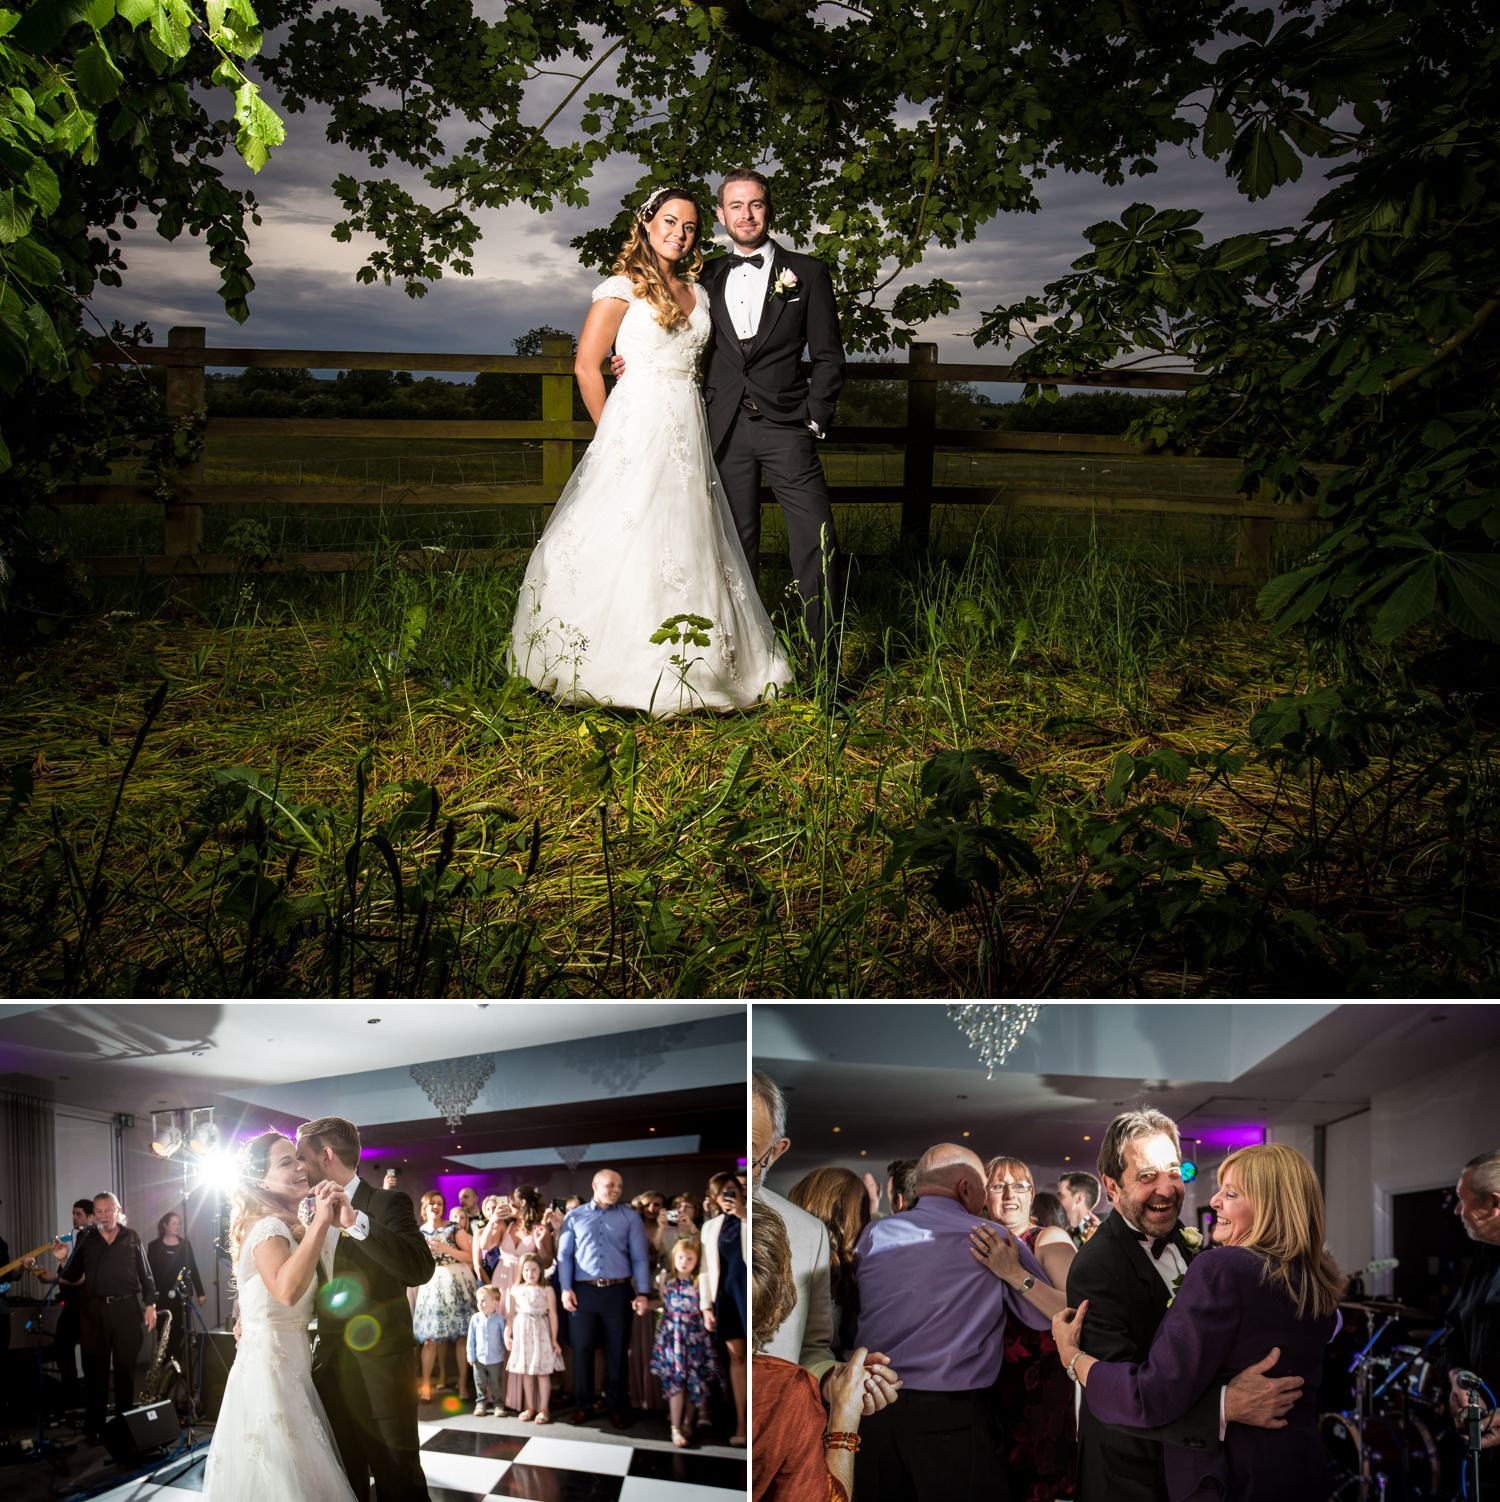 Wedding Photography Shropshire, couple portraits and first dance